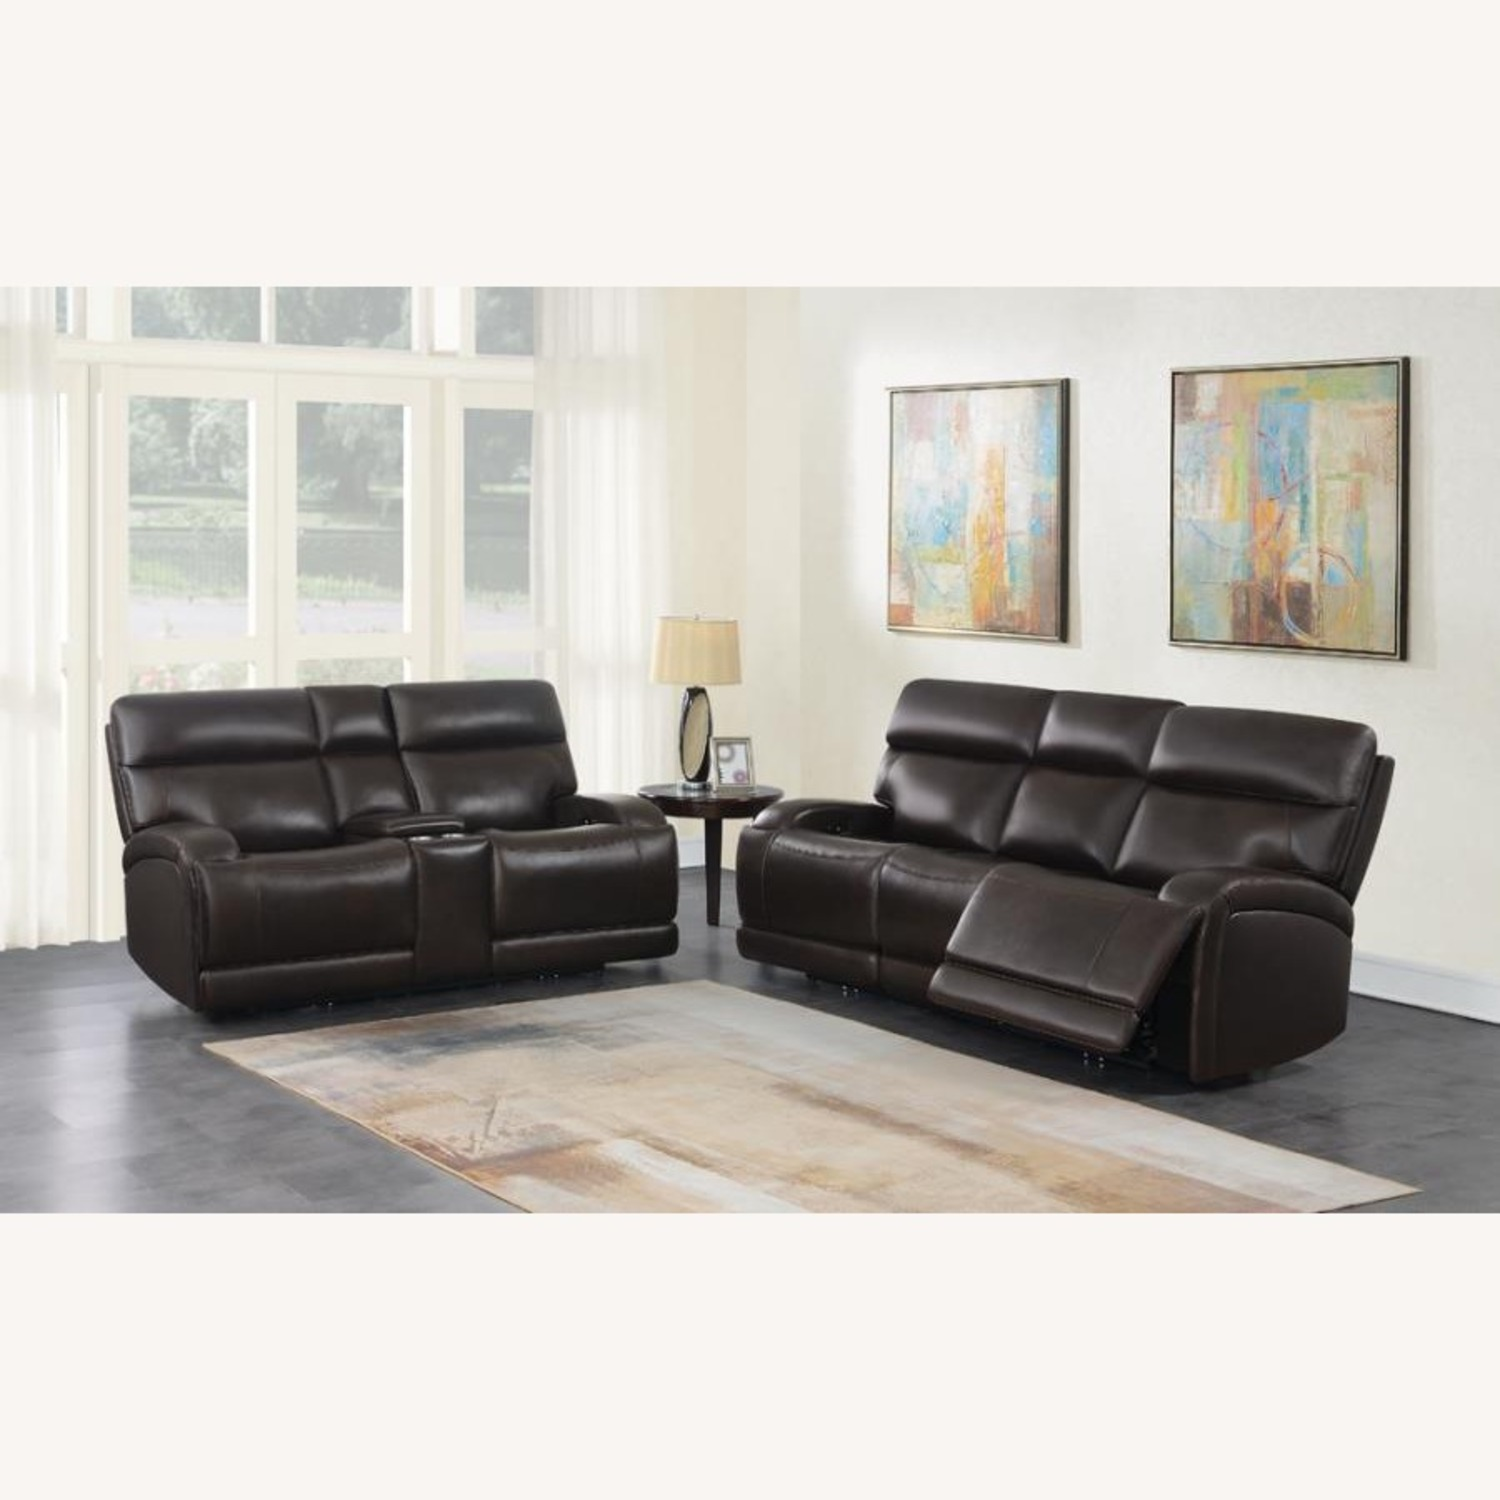 Power Loveseat W/ Console In Dark Brown Leather - image-11